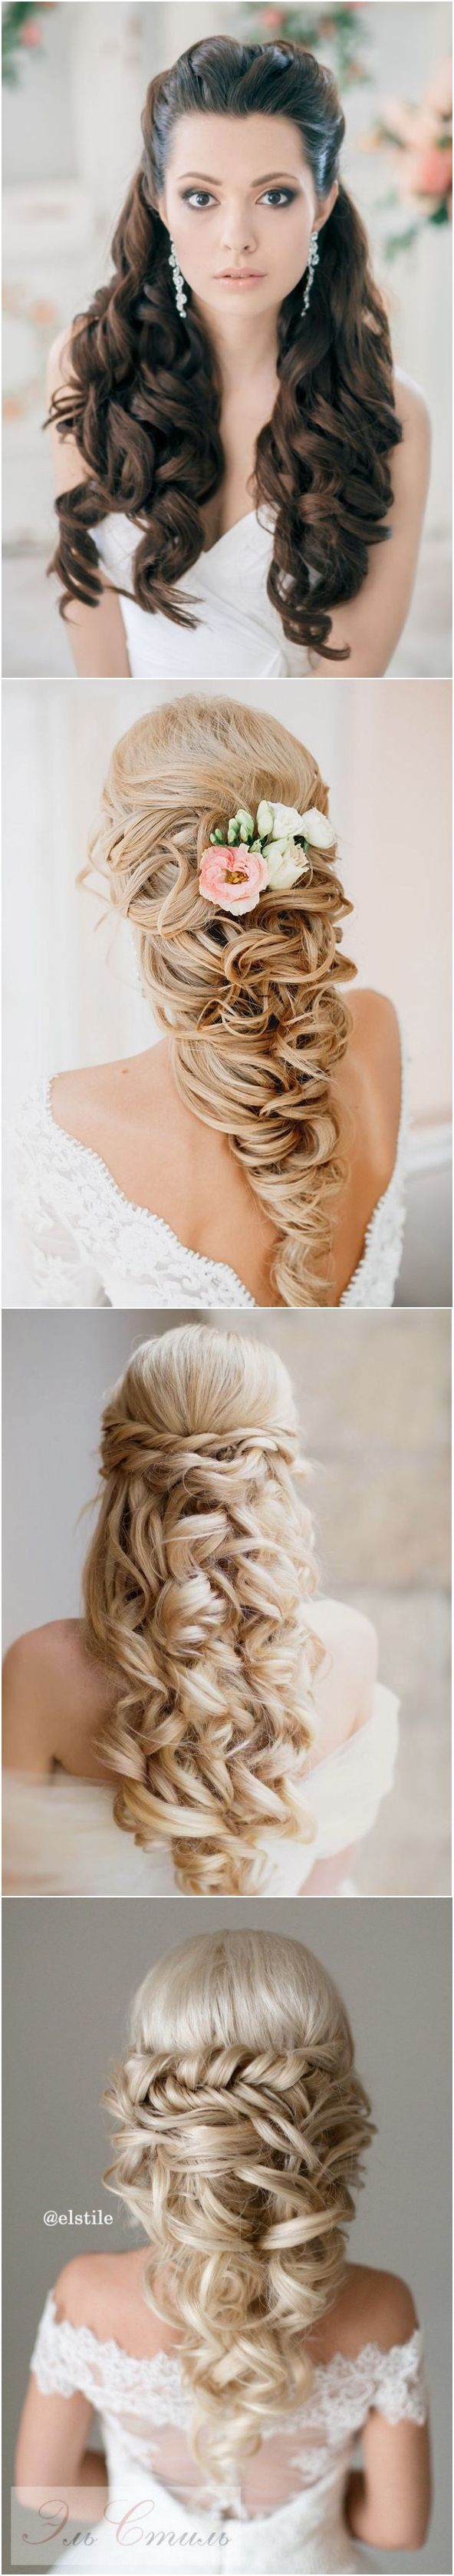 best cosmetics hair images on pinterest hairstyle ideas